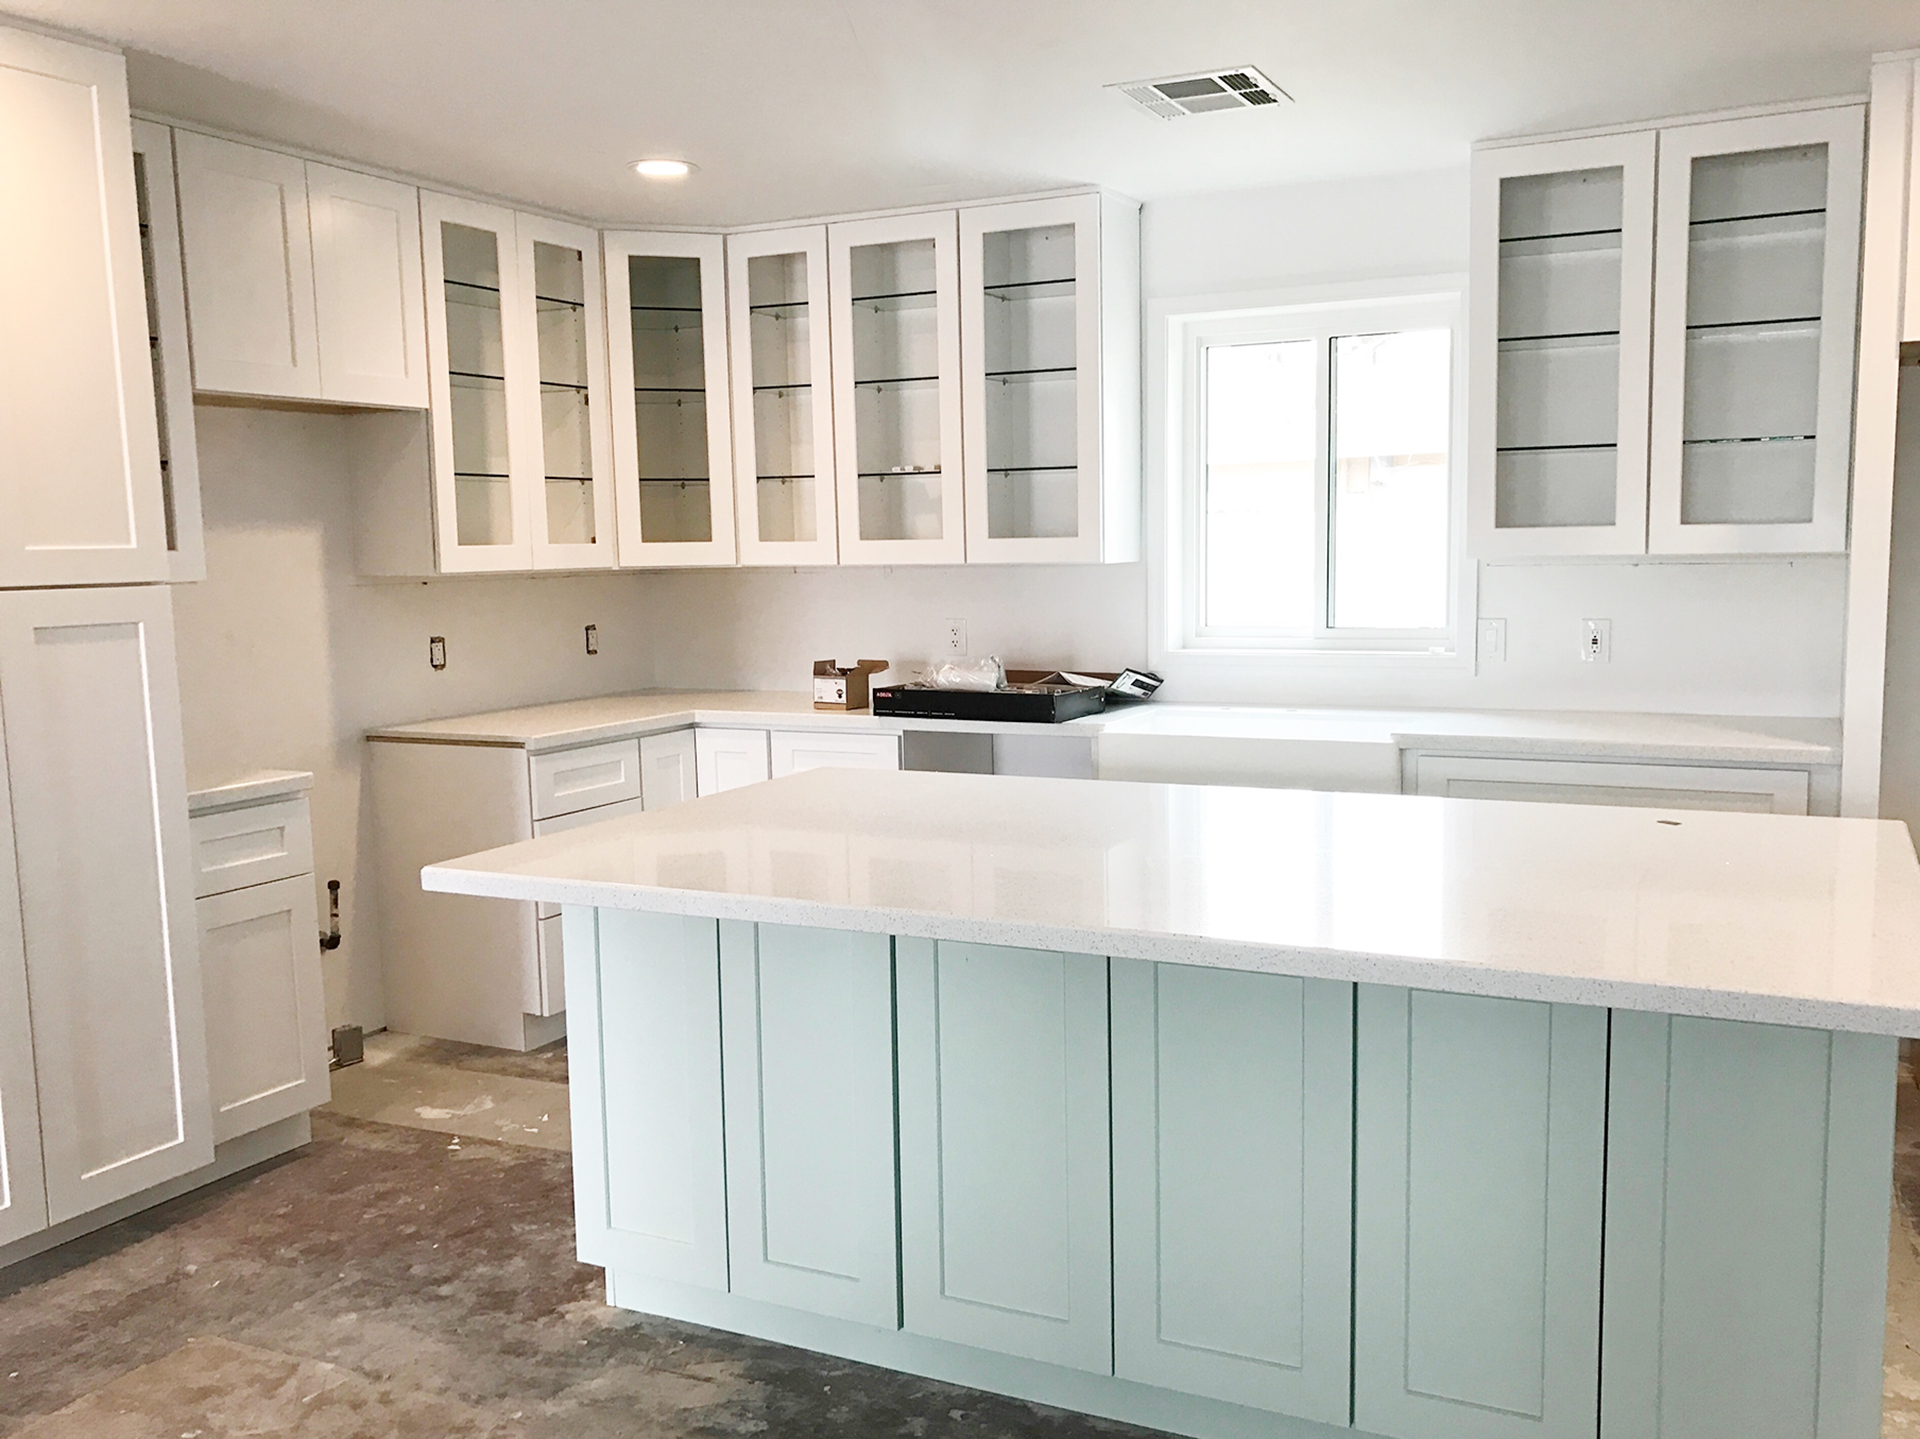 cement quartz eco worktops adorable marble reclaimed lowe glass slabs houston vanity white lowes size colors recycled kitchen tops countertop granite full bathroom countertops price tampa brooklyn crushed s of